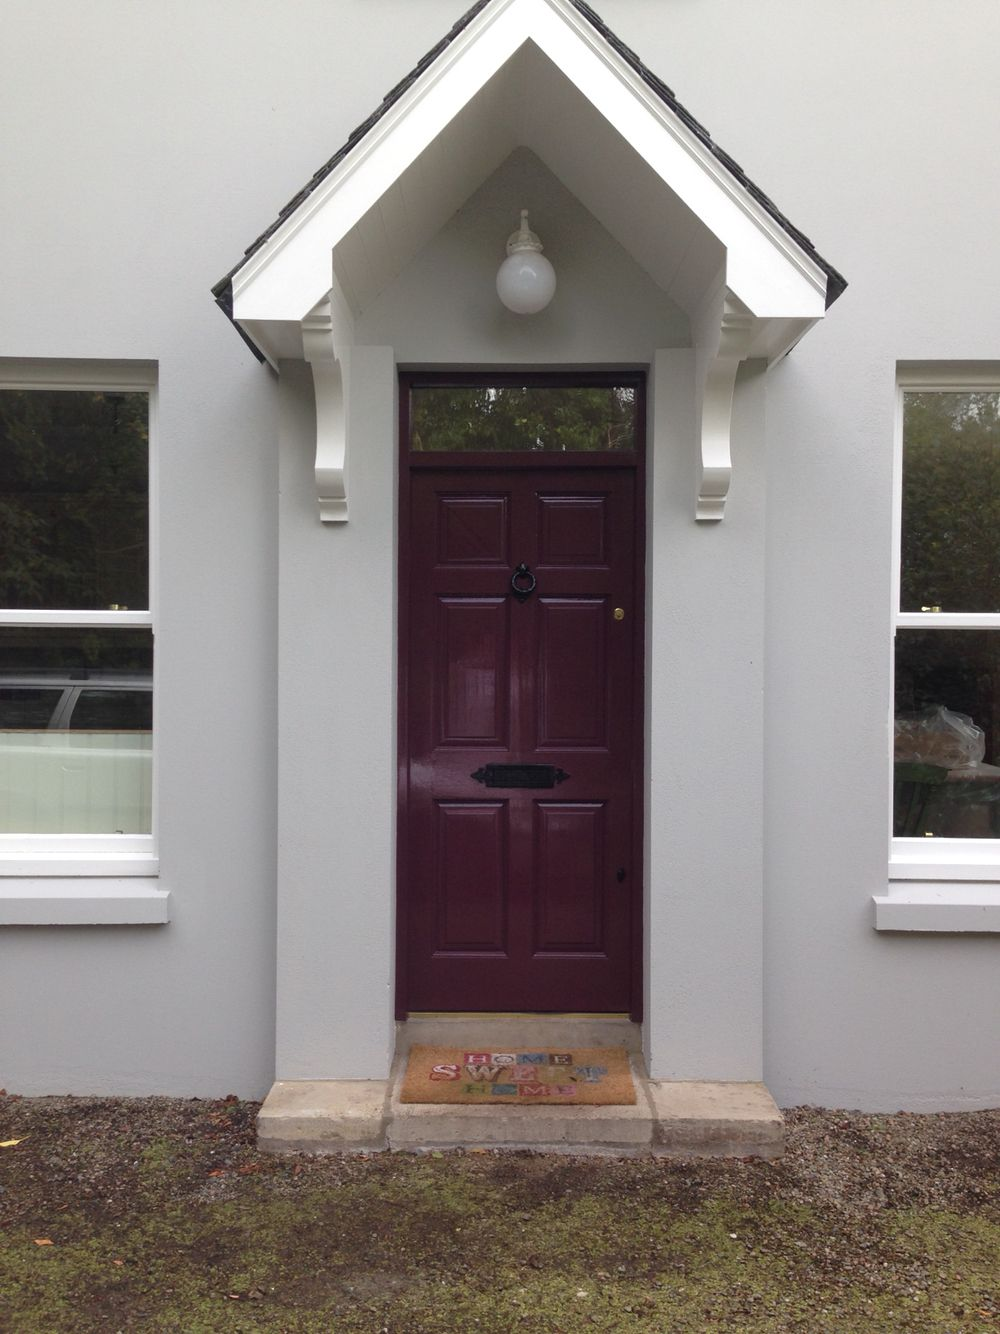 Farrow Ball Pavilion Grey With Brinjal Front Door Farrow Ball Paint